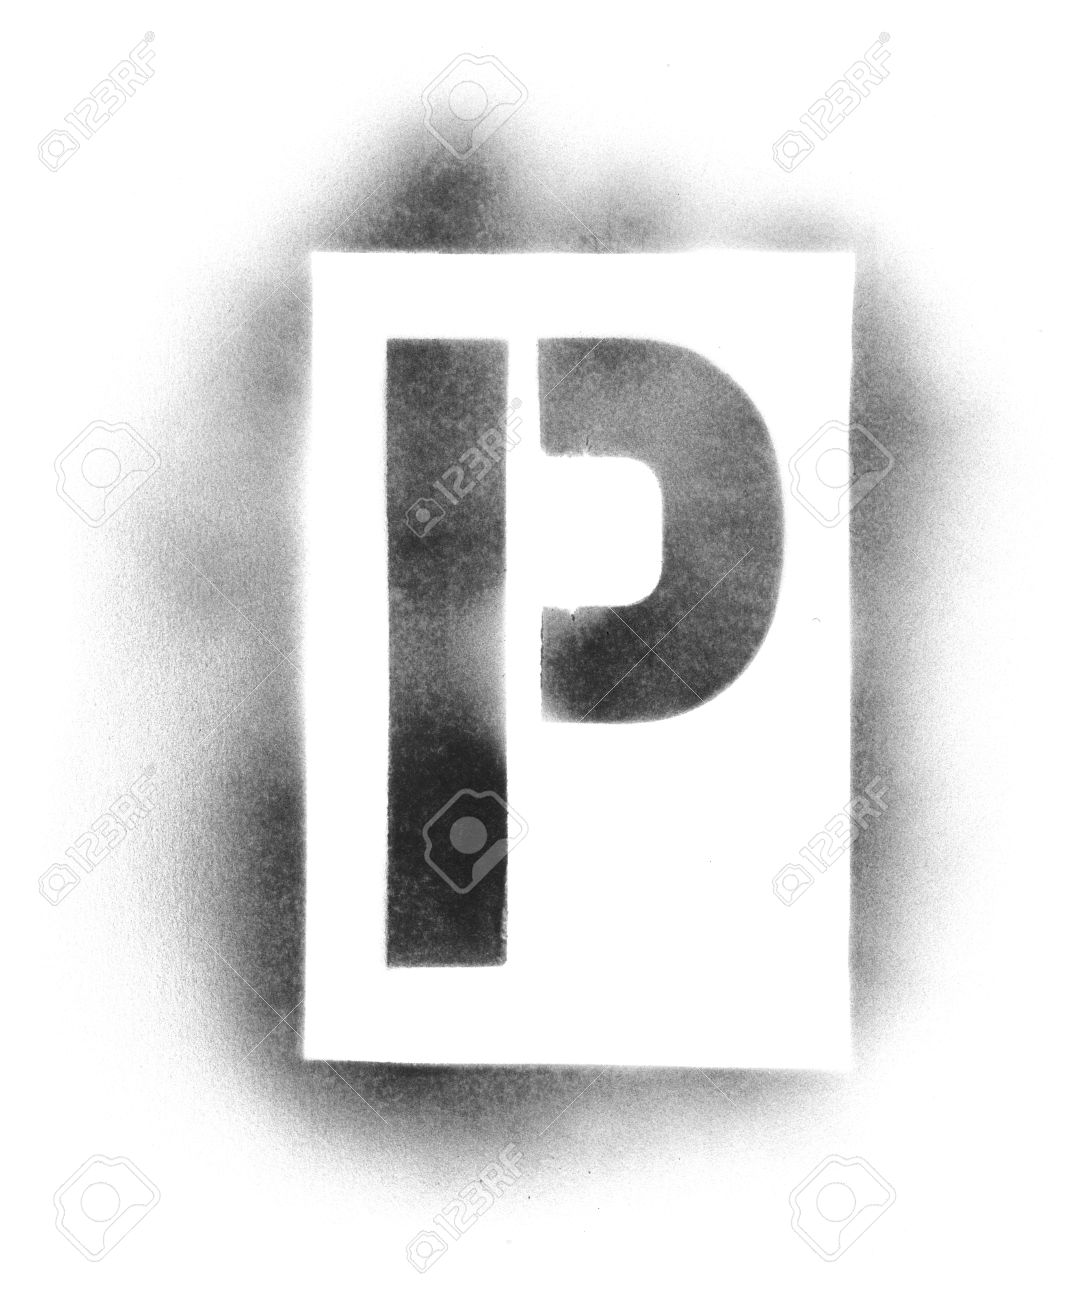 Stencil Letters In Spray Paint Stock Photo Picture And Royalty Free